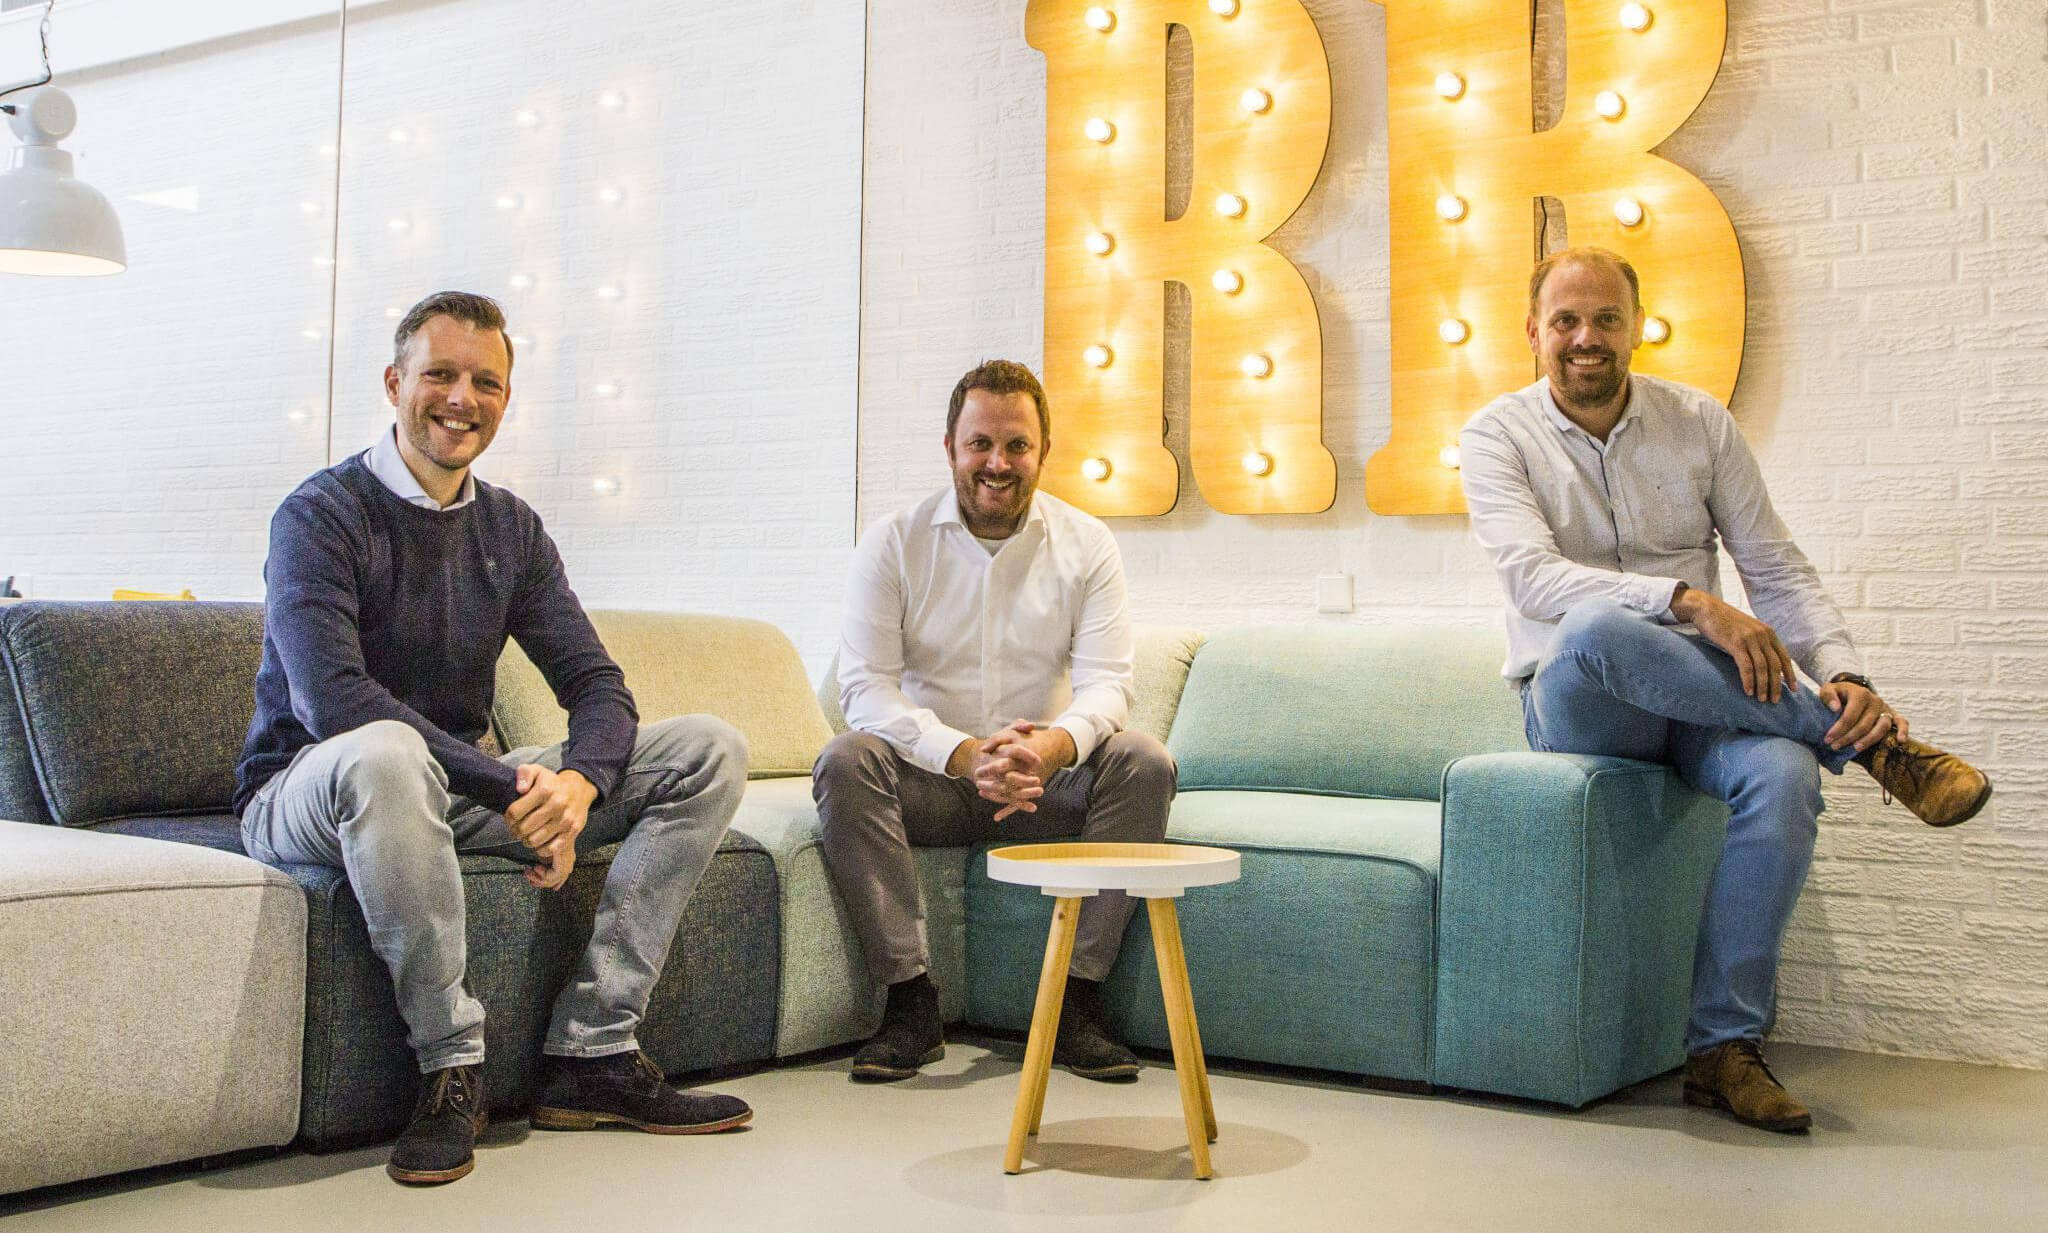 RB-Media lanceert RBorne!